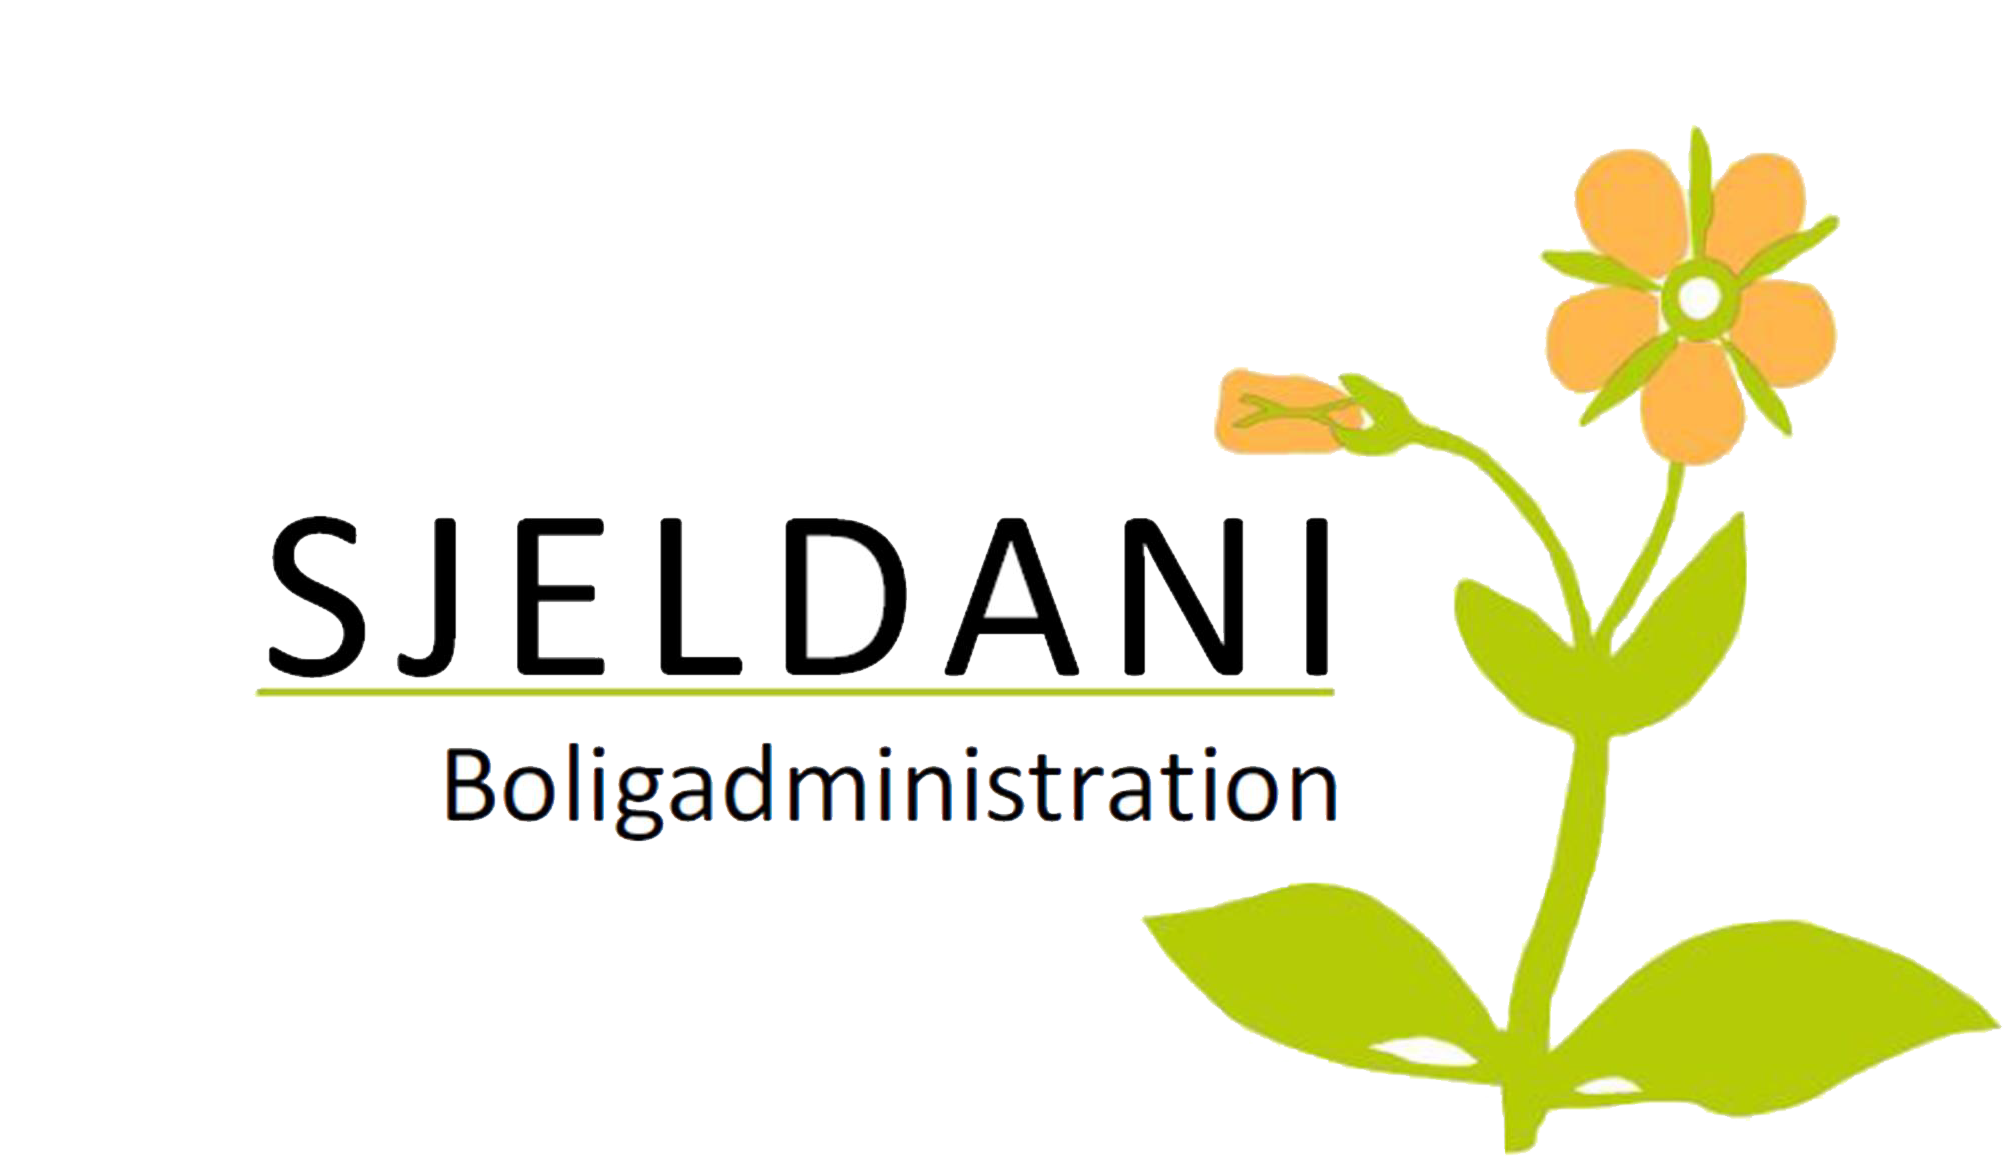 Sjeldani Boligadministration